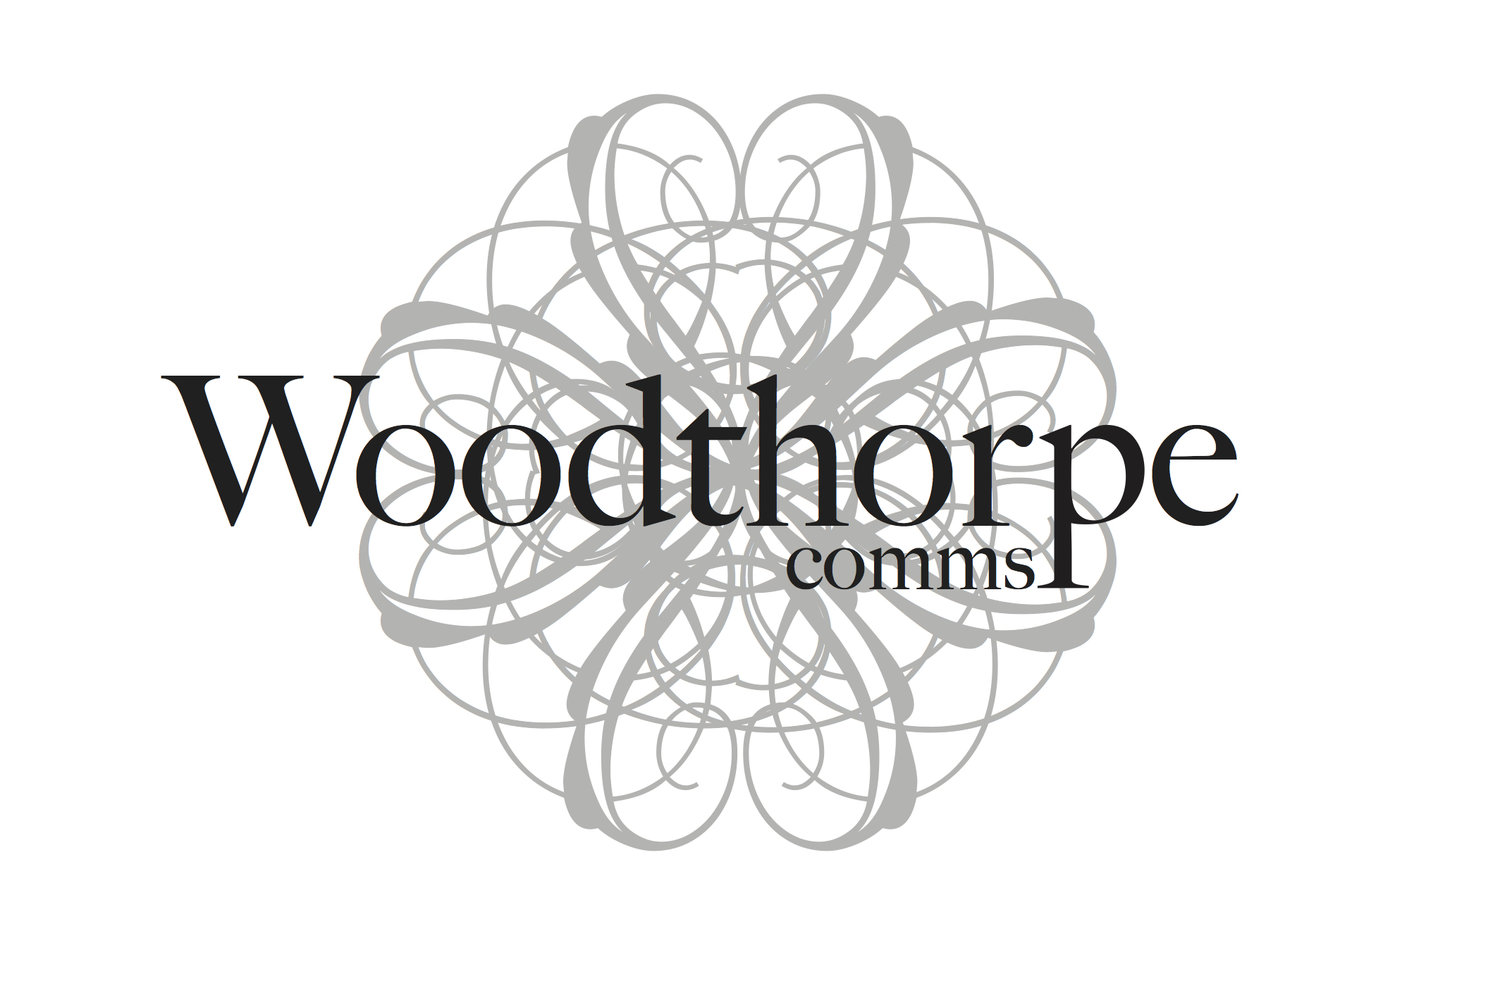 Woodthorpe comms